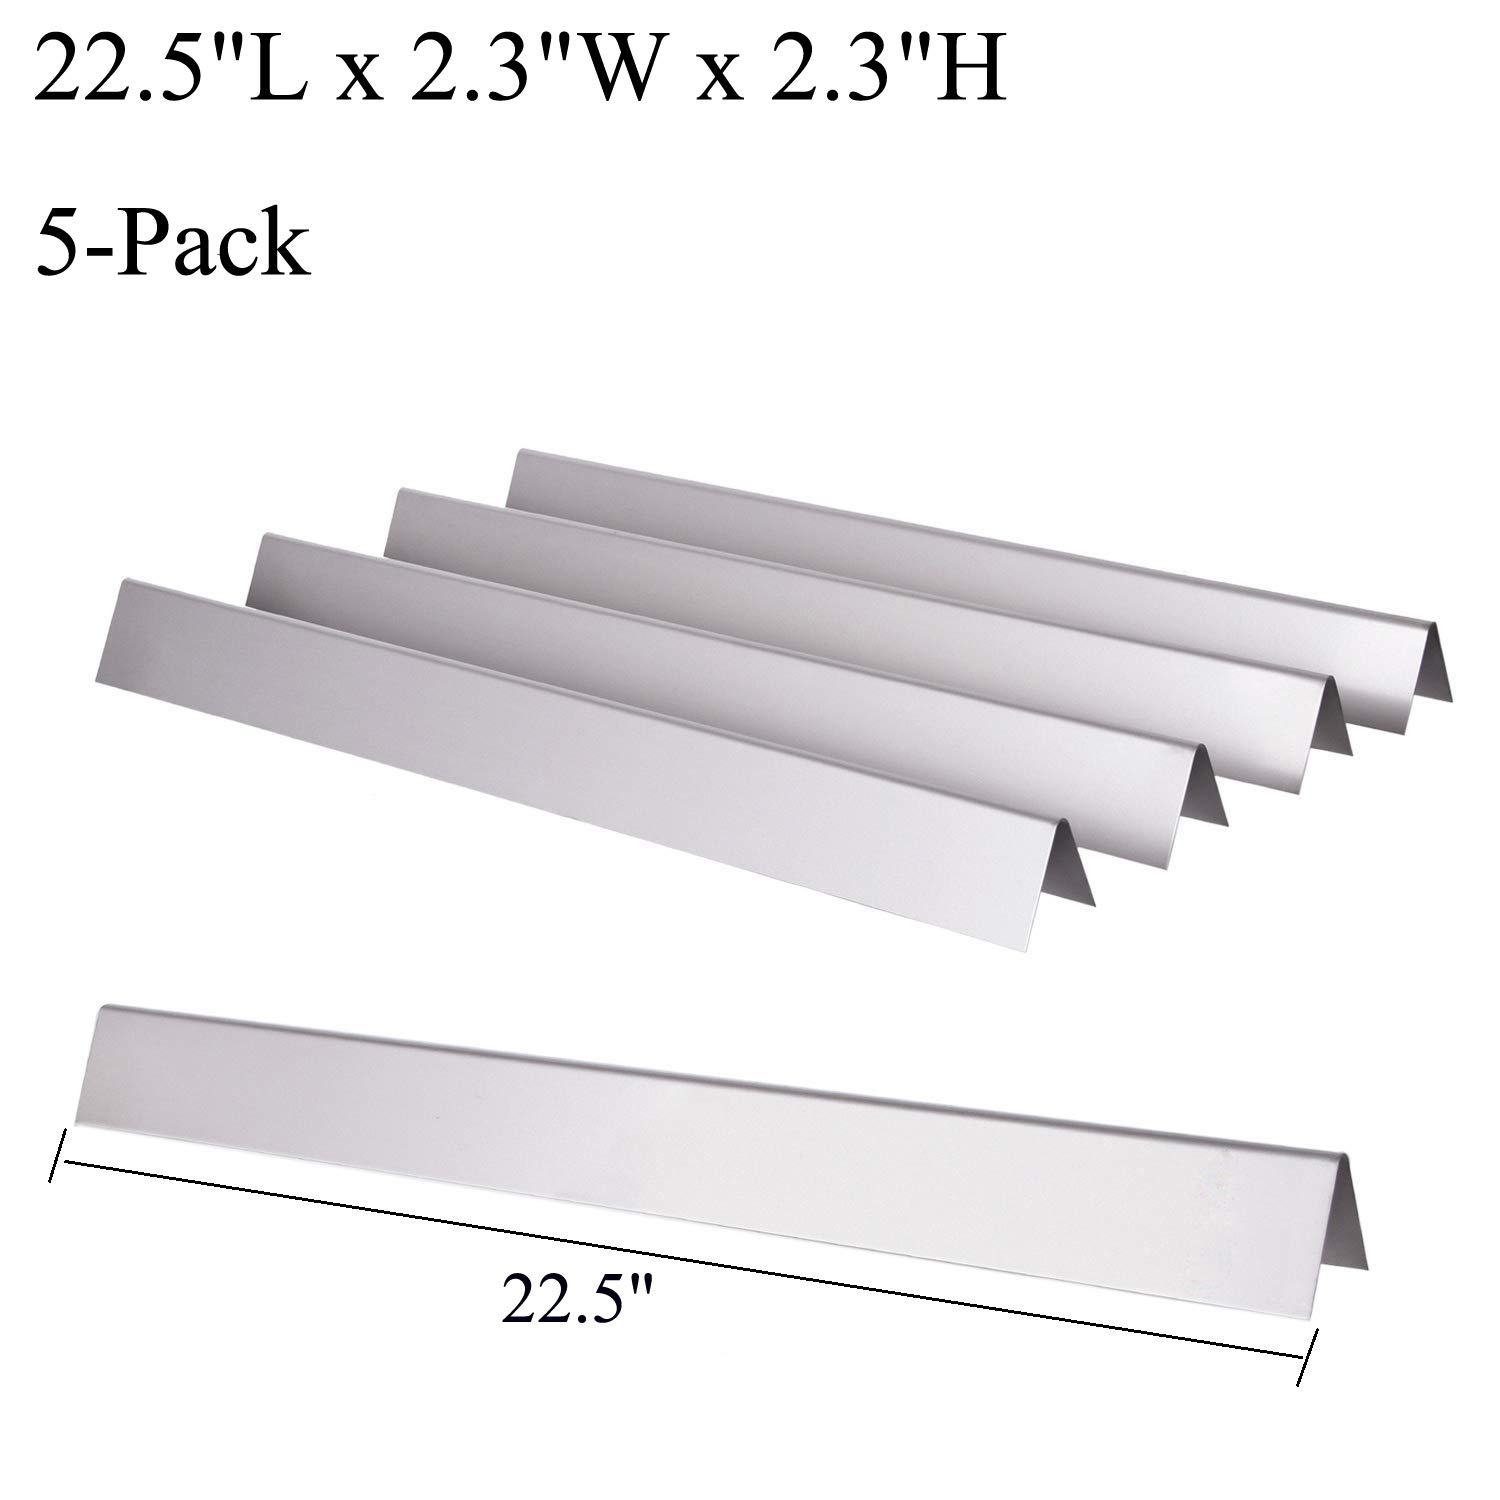 GasSaf 22.5 inch Flavorizer Bar Replacement for Weber 7536, 7537, Spirit(3 Burners) E-310/E-320, Spirit 700, Genesis Silver B/C, Gold B/C, Platinum B/C, Weber 900, 5-Pack Stainless Steel Flavor Bar